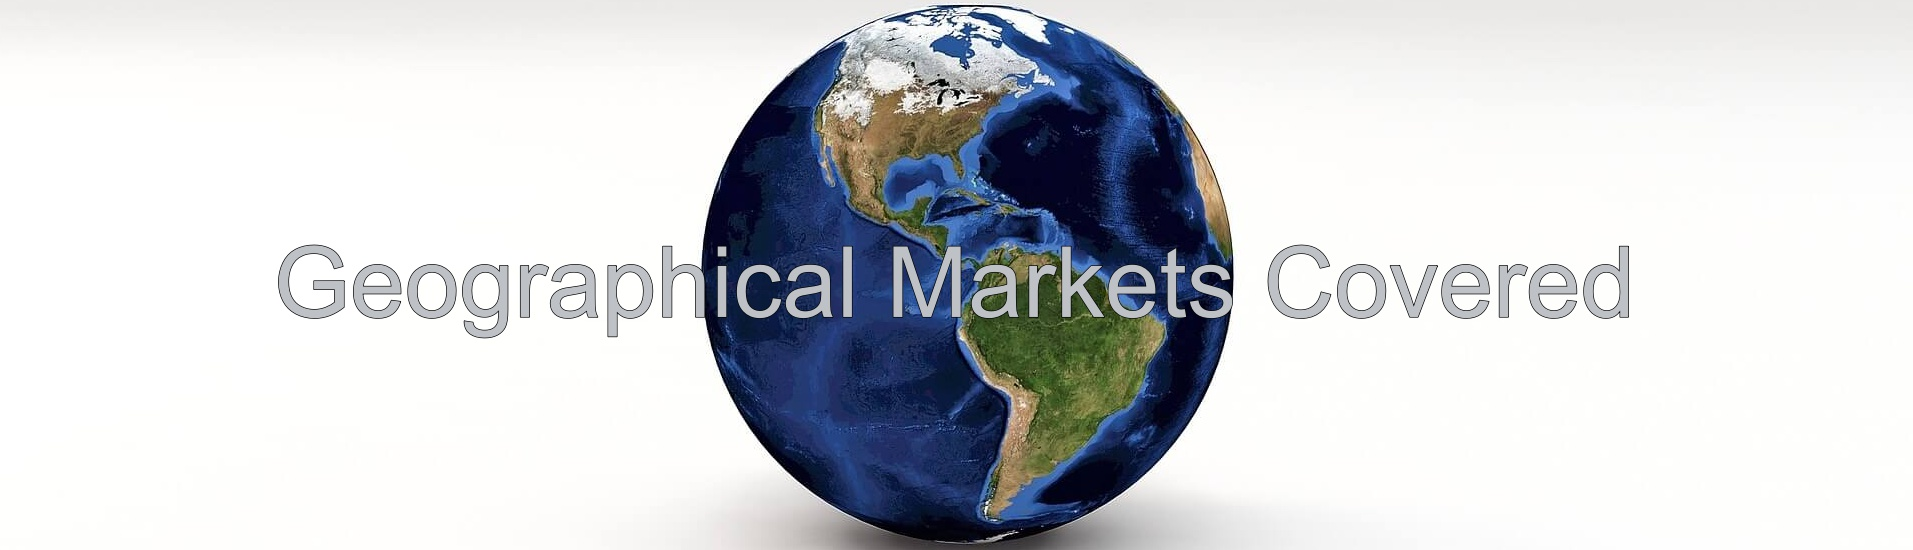 Geographical Markets Covered